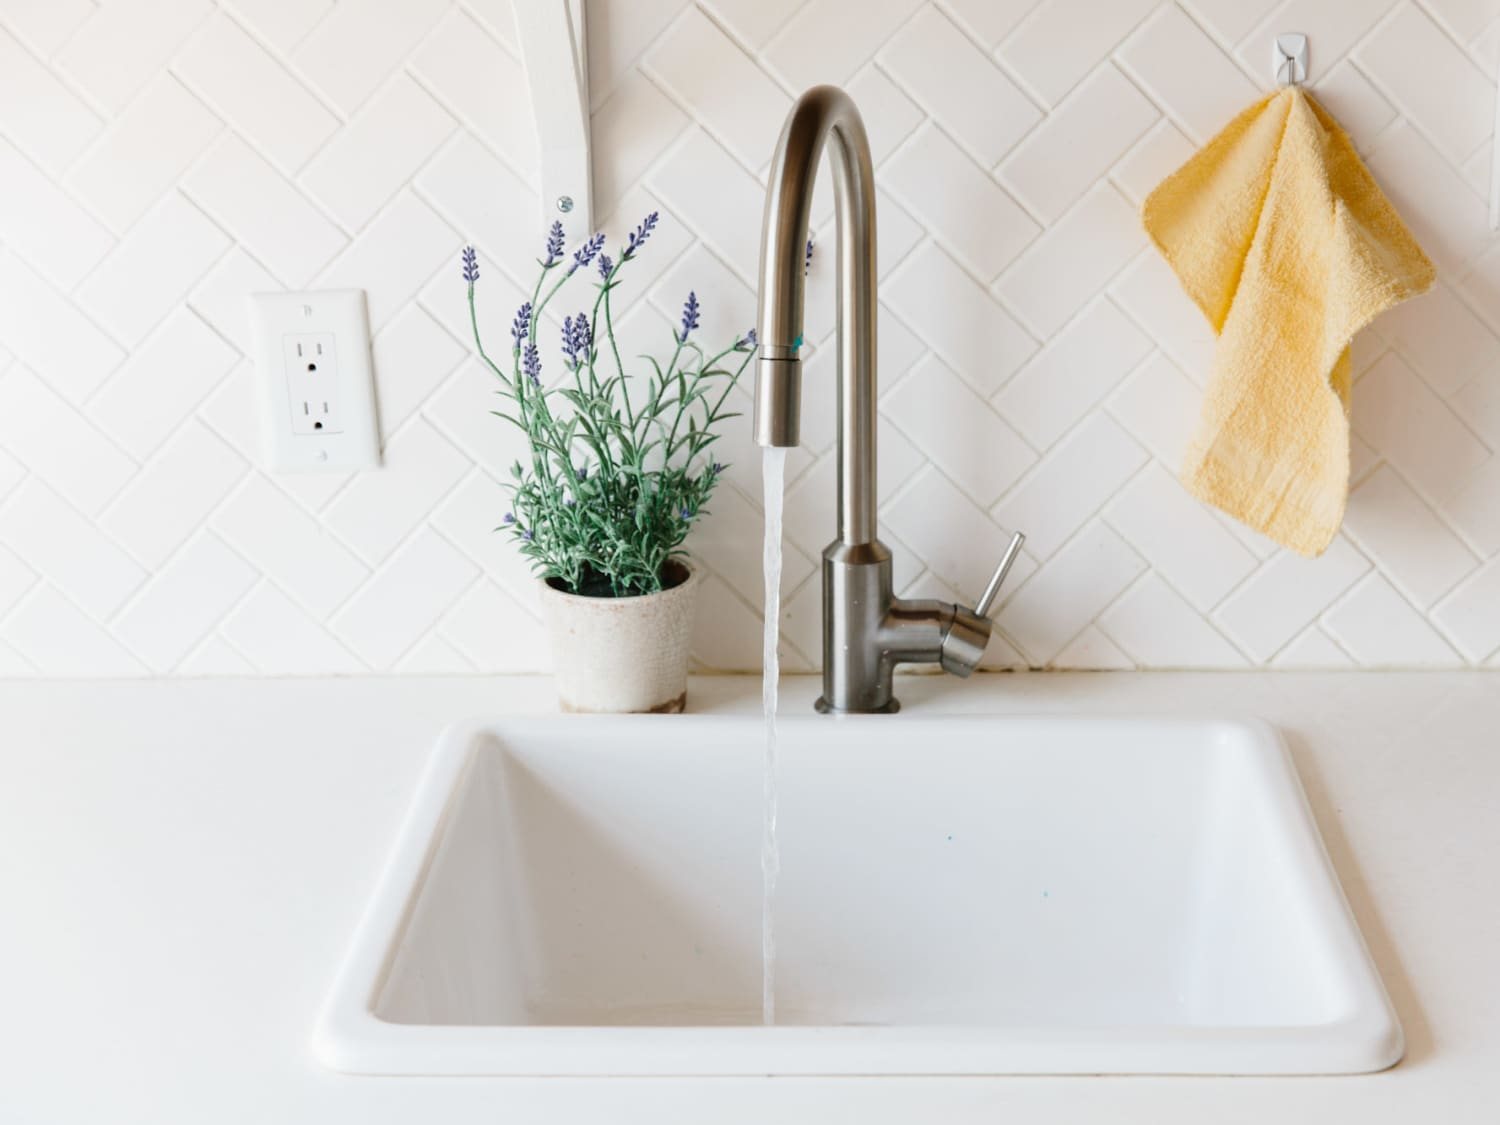 How To Fix A Slow Draining Sink Apartment Therapy